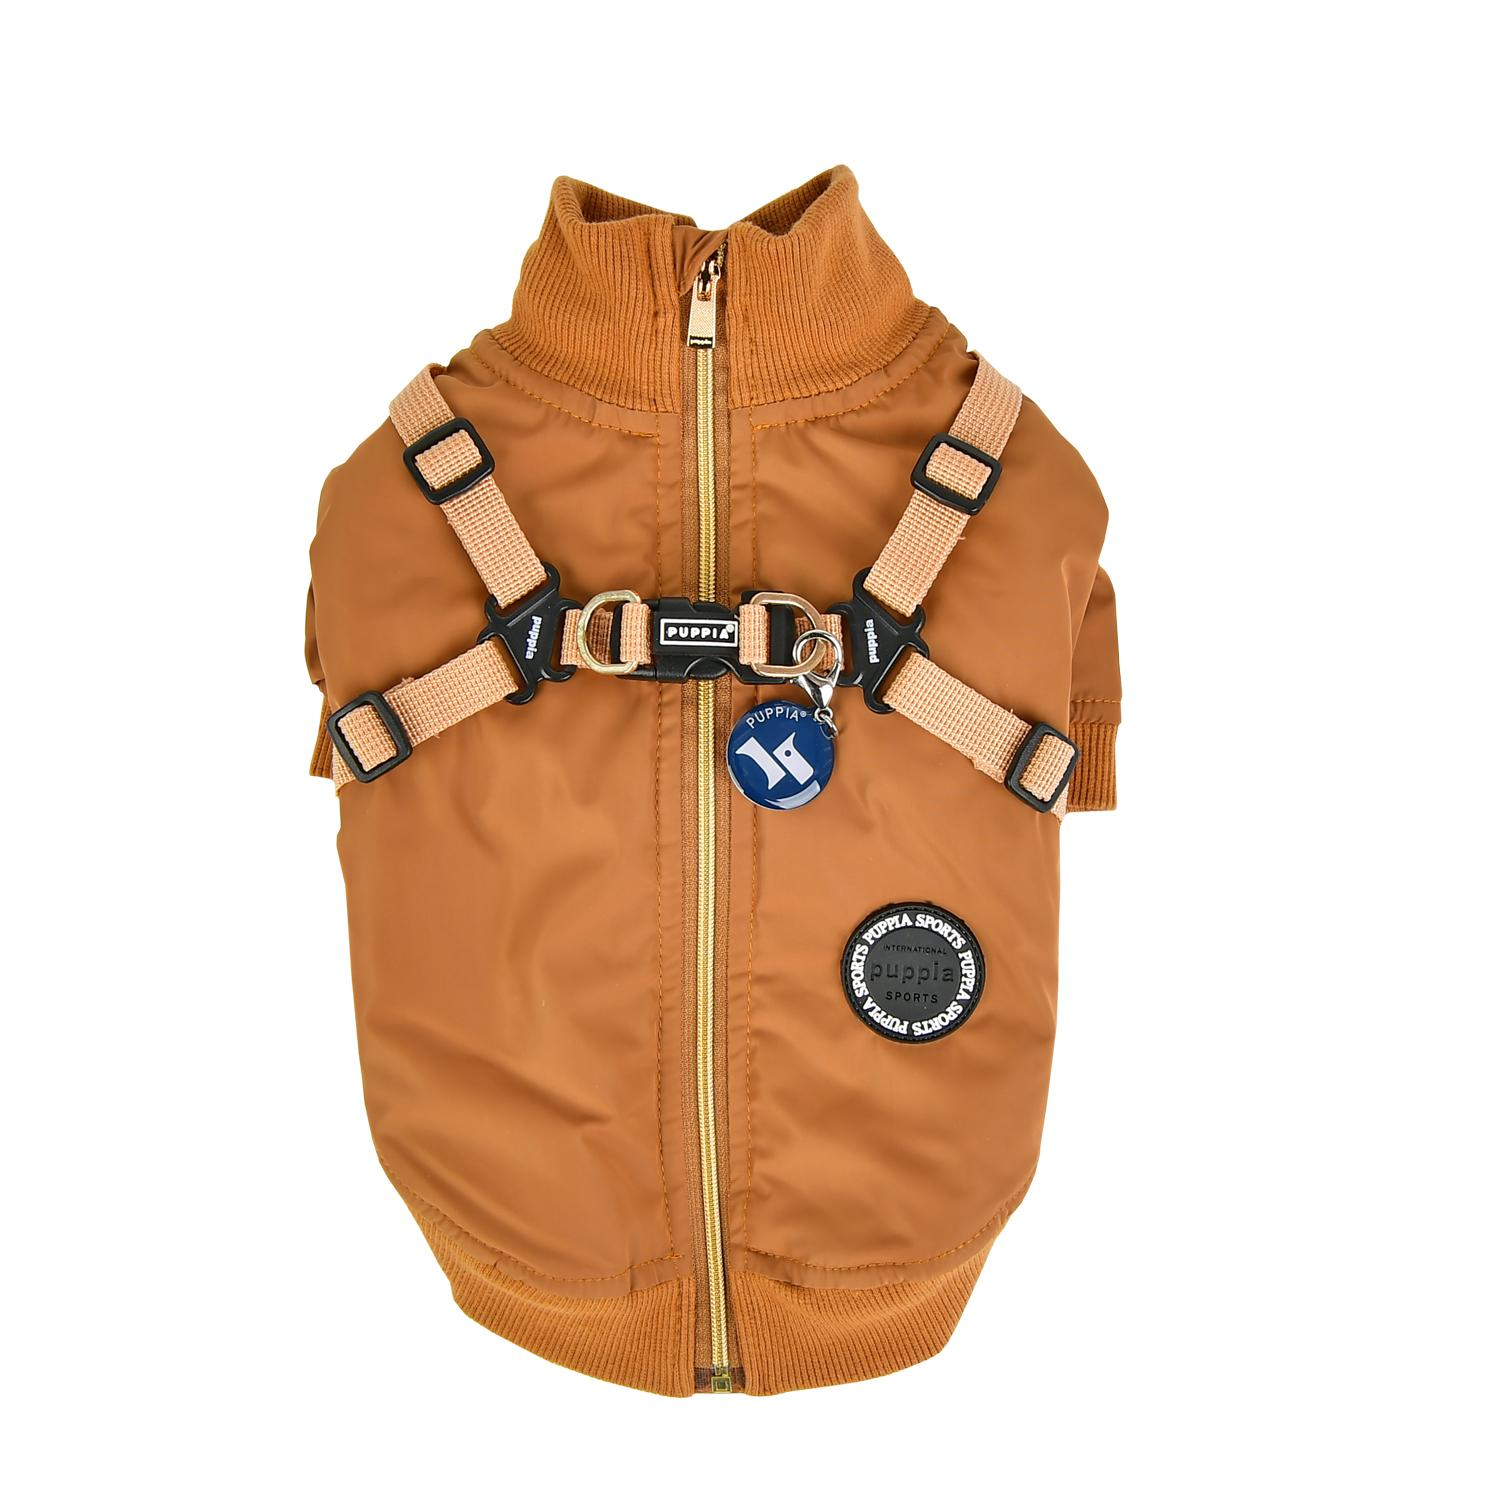 Dominic Dog Vest by Puppia - Camel